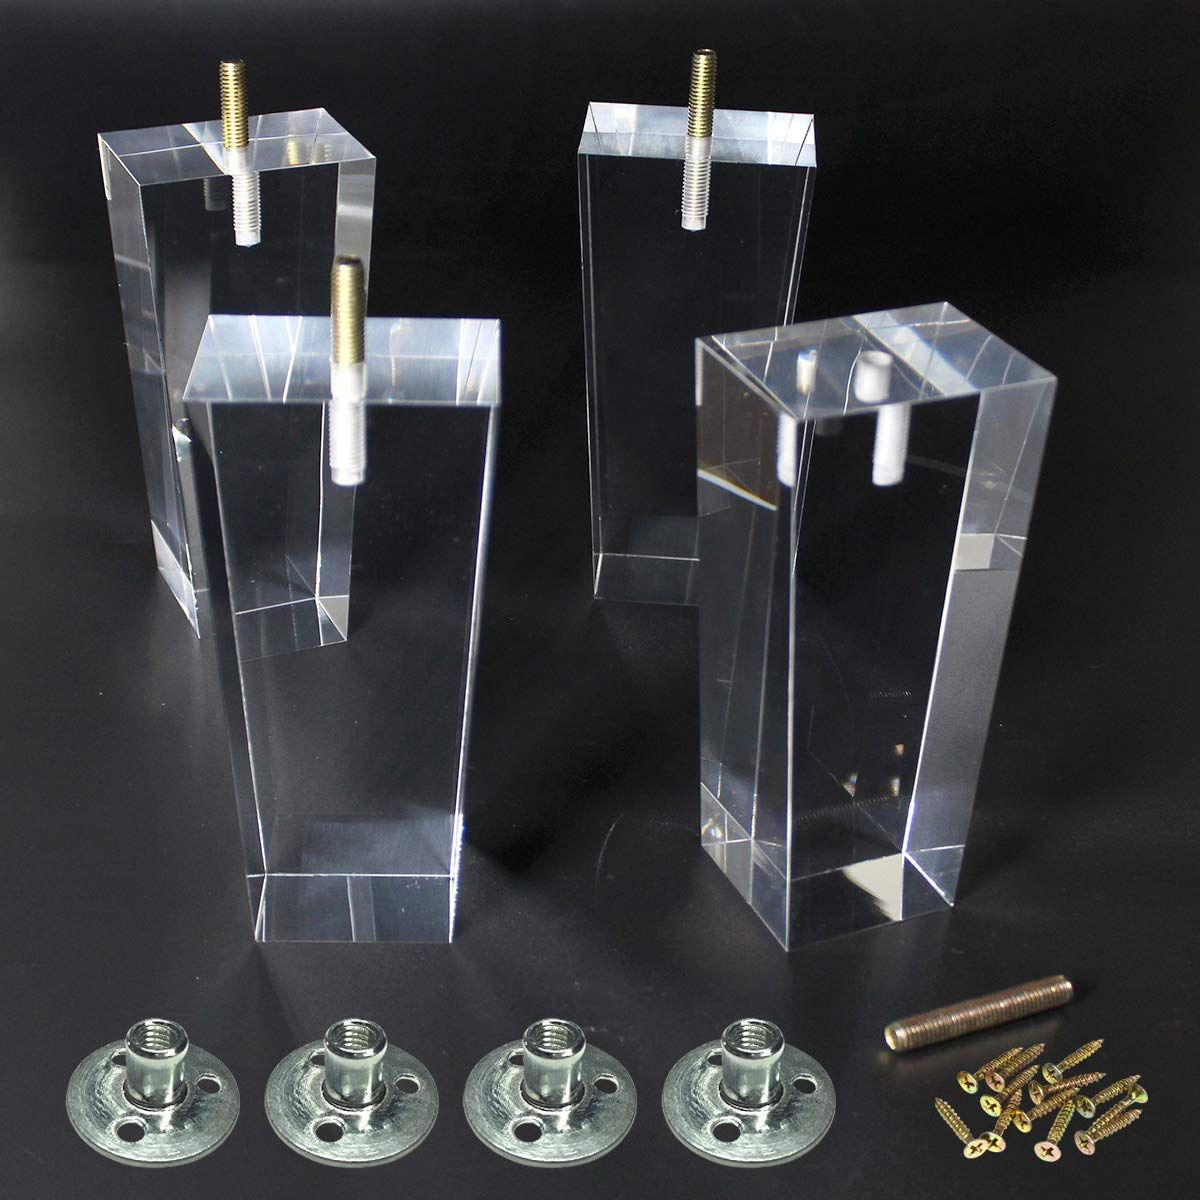 Replacement Legs Square Acrylic Sofa Feet 8 Inch Stand Legs For Bed Side Table Night Table Cupboard Antique M Glass Bookcase Acrylic Furniture Sideboard Buffet